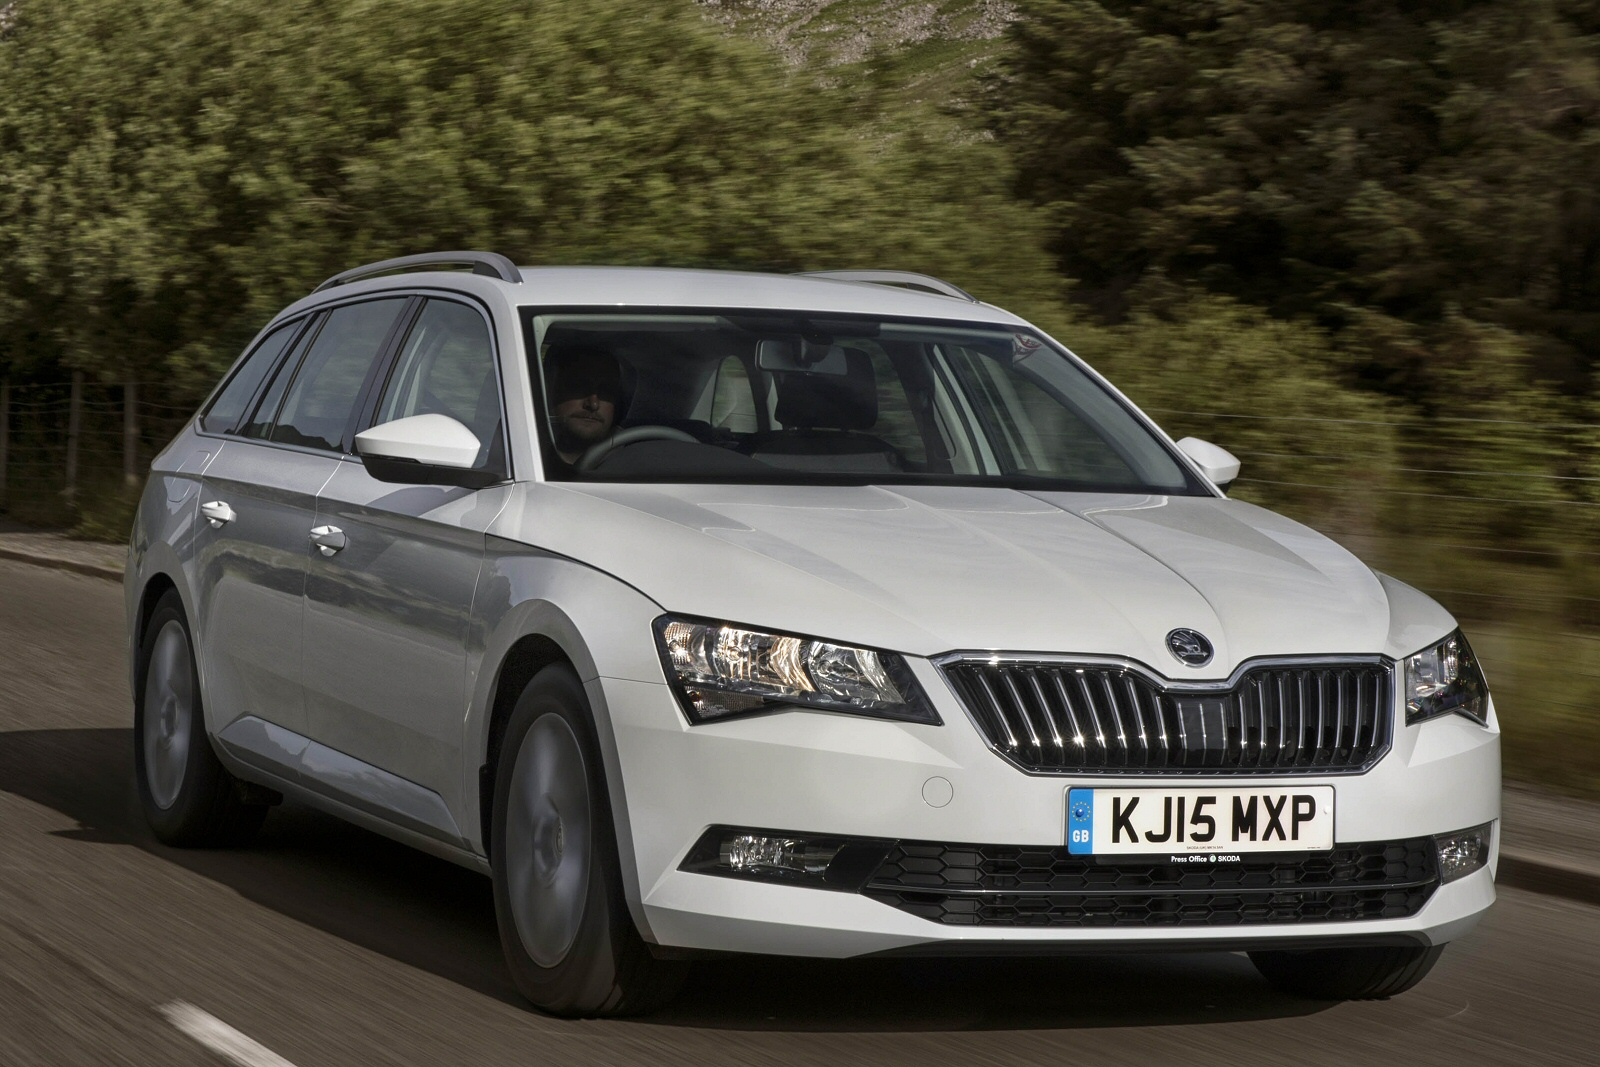 new skoda superb 1 4 tsi s 5dr petrol estate for sale bristol street. Black Bedroom Furniture Sets. Home Design Ideas